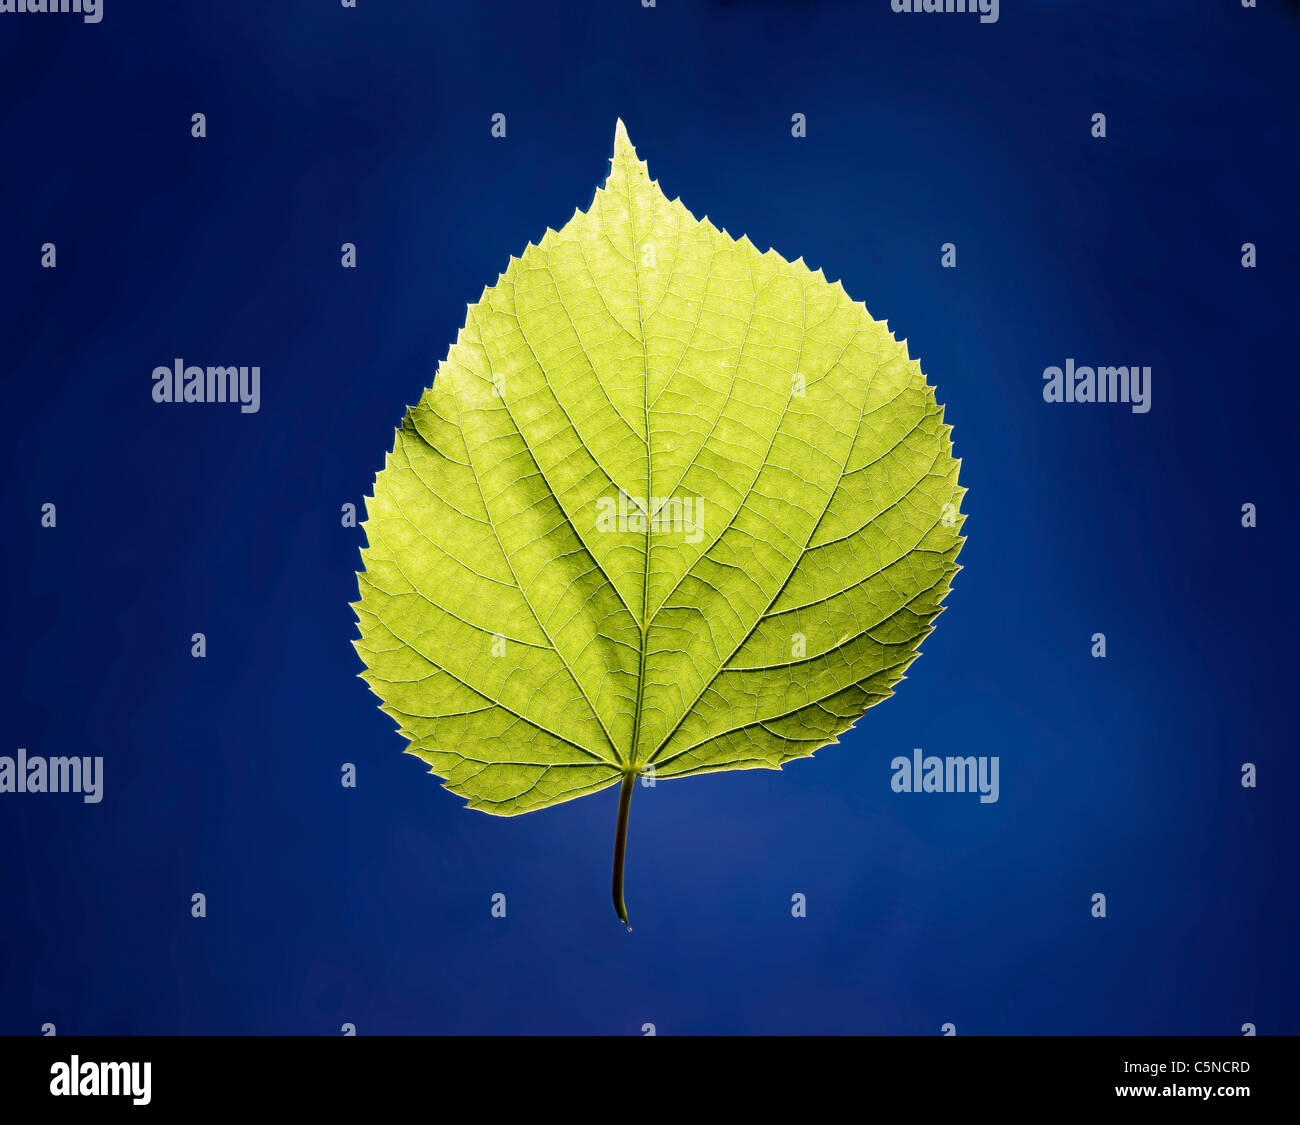 A green leaf on a blue surface - Stock Image